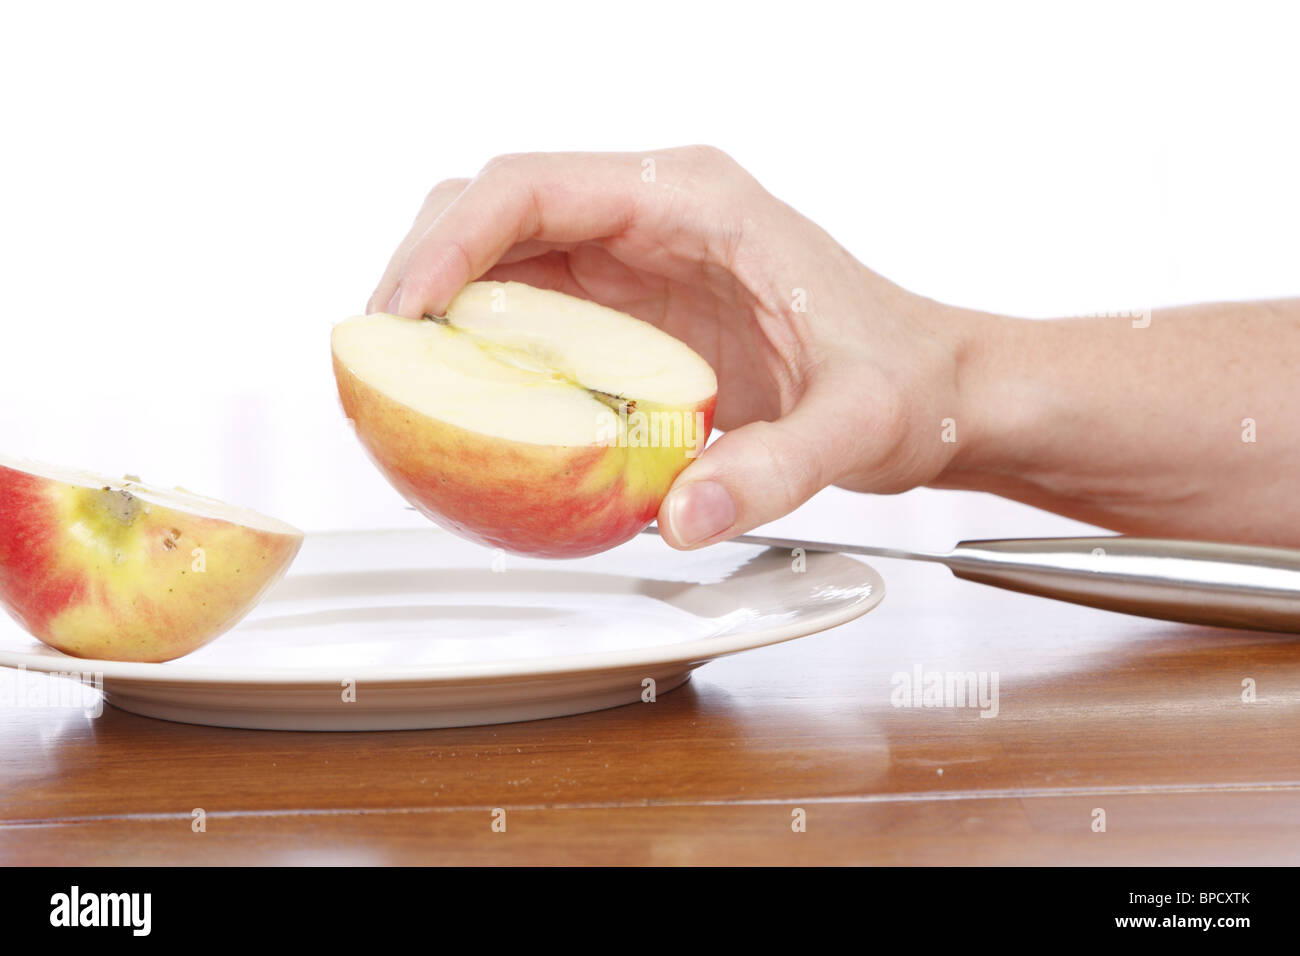 Découpage des mains un apple Photo Stock